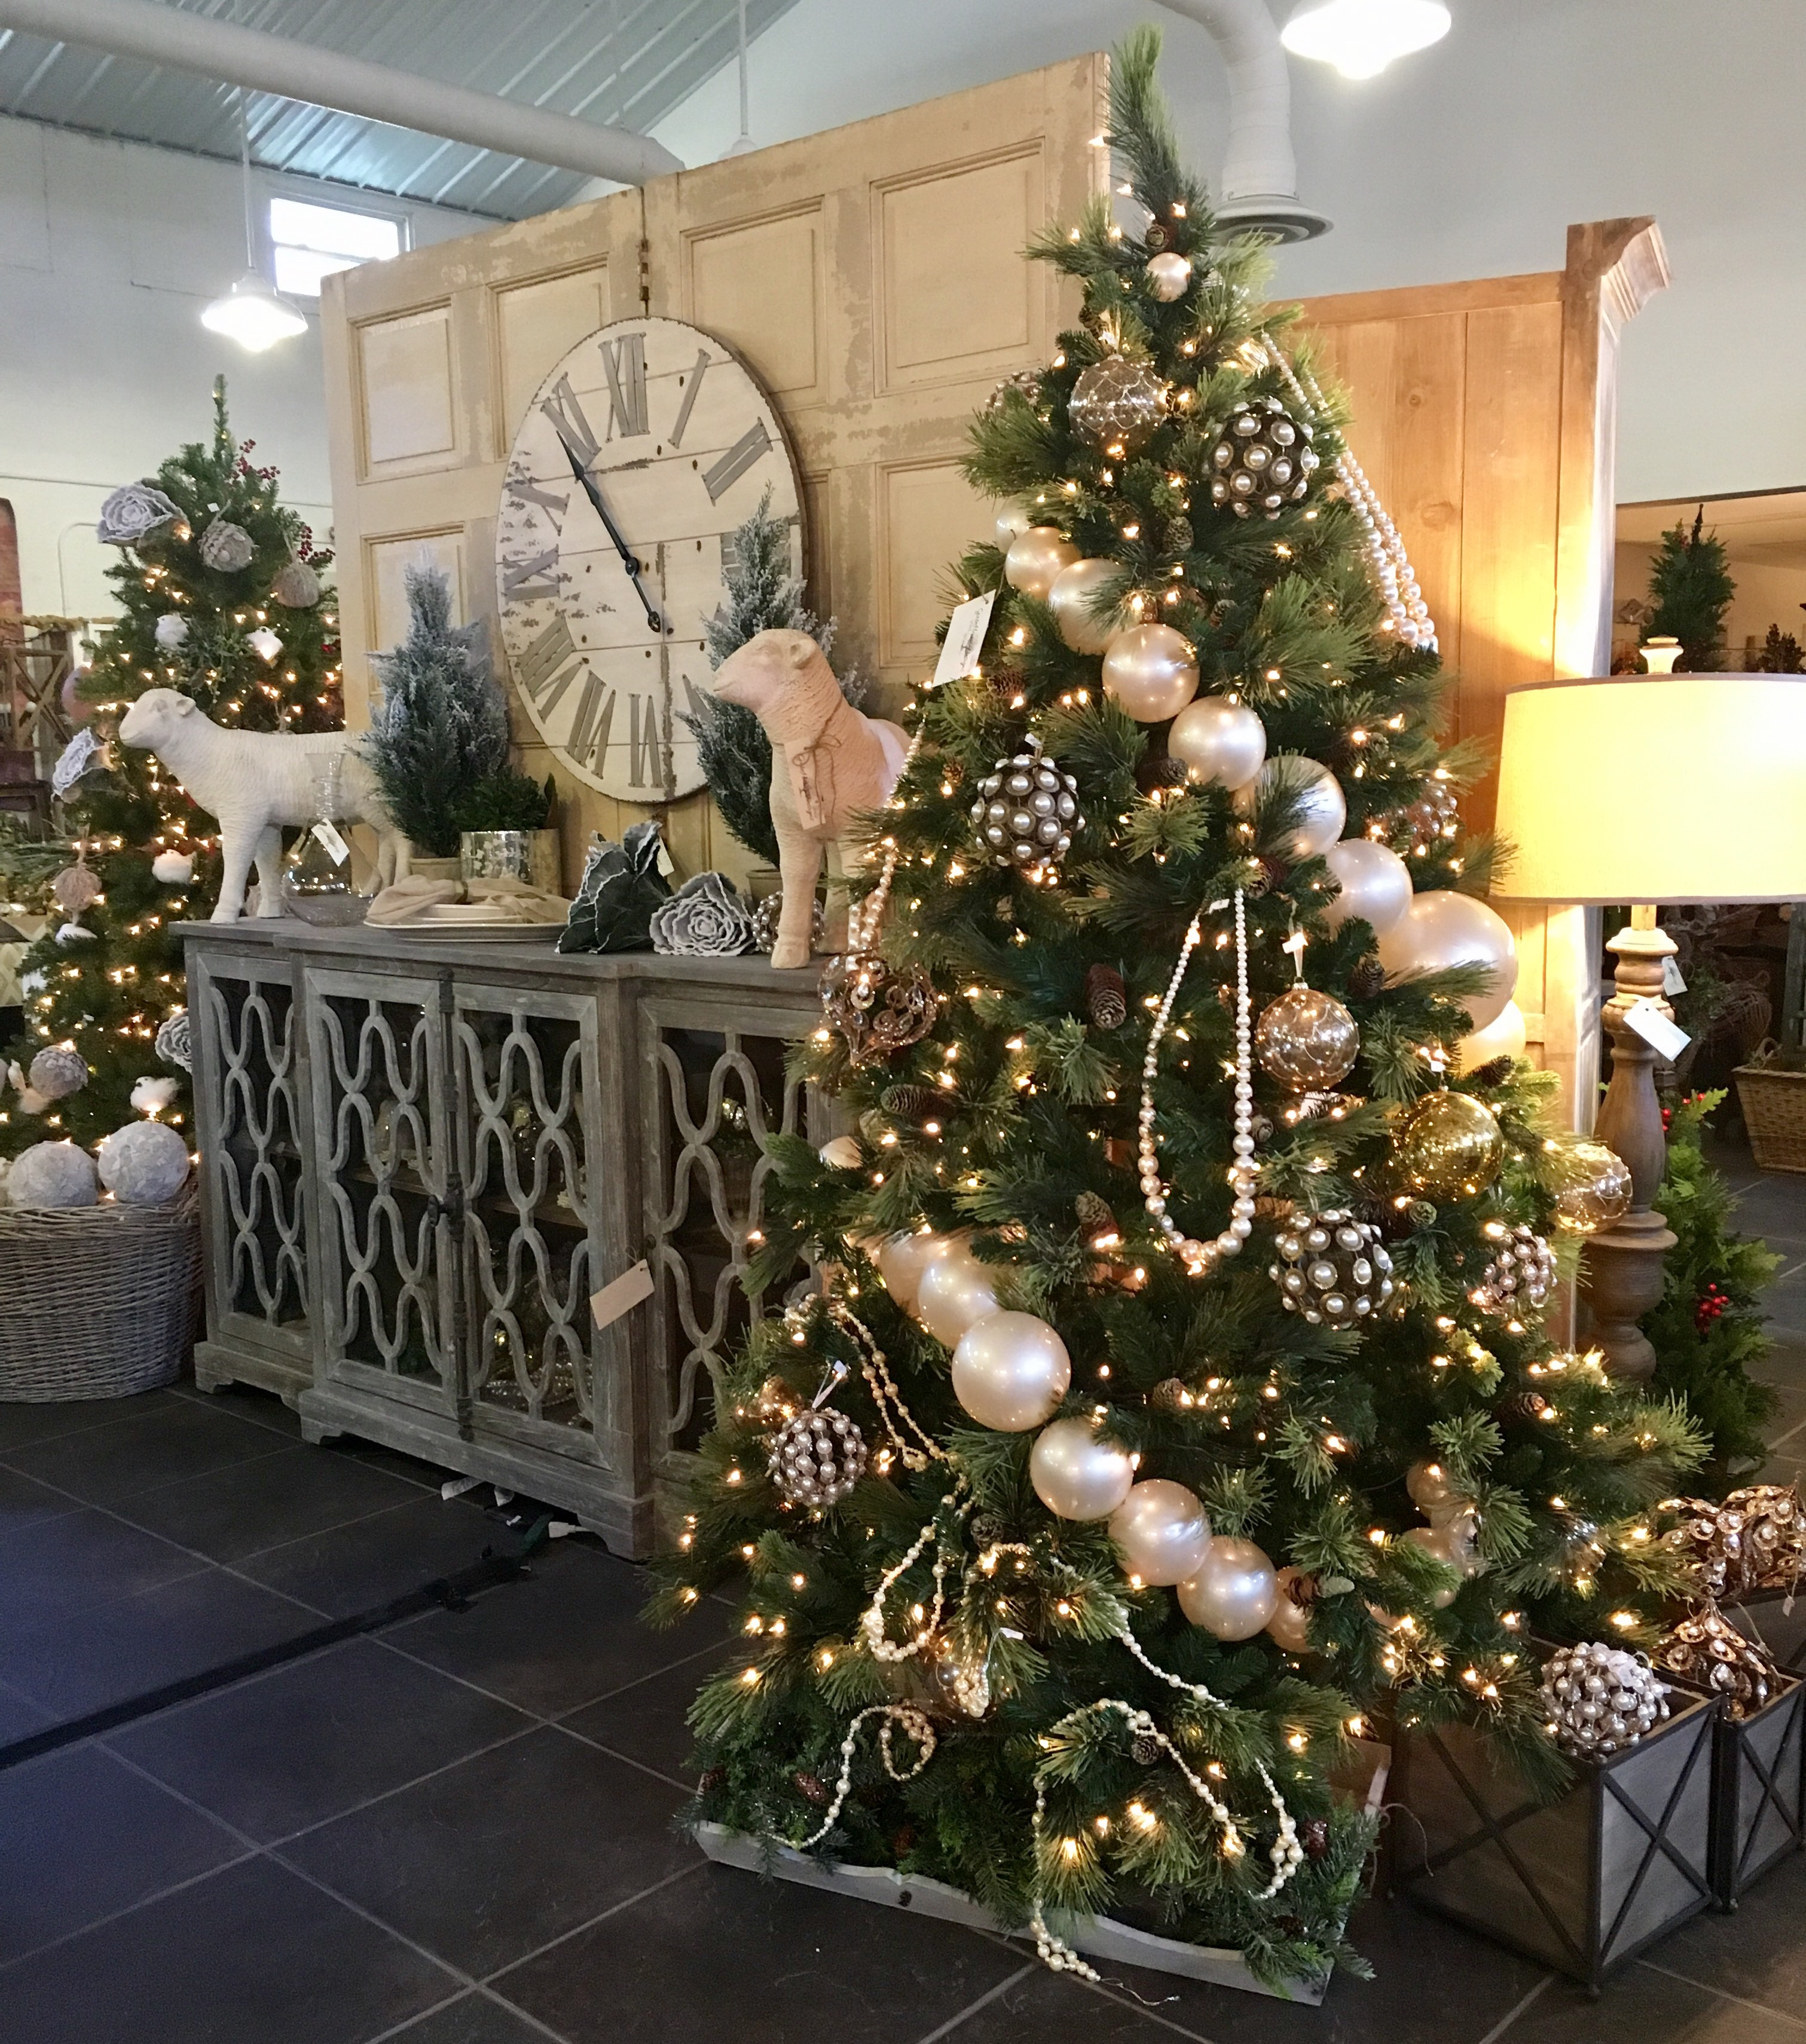 How To Decorate Shops: Christmas Vintage Decor Shopping Tour